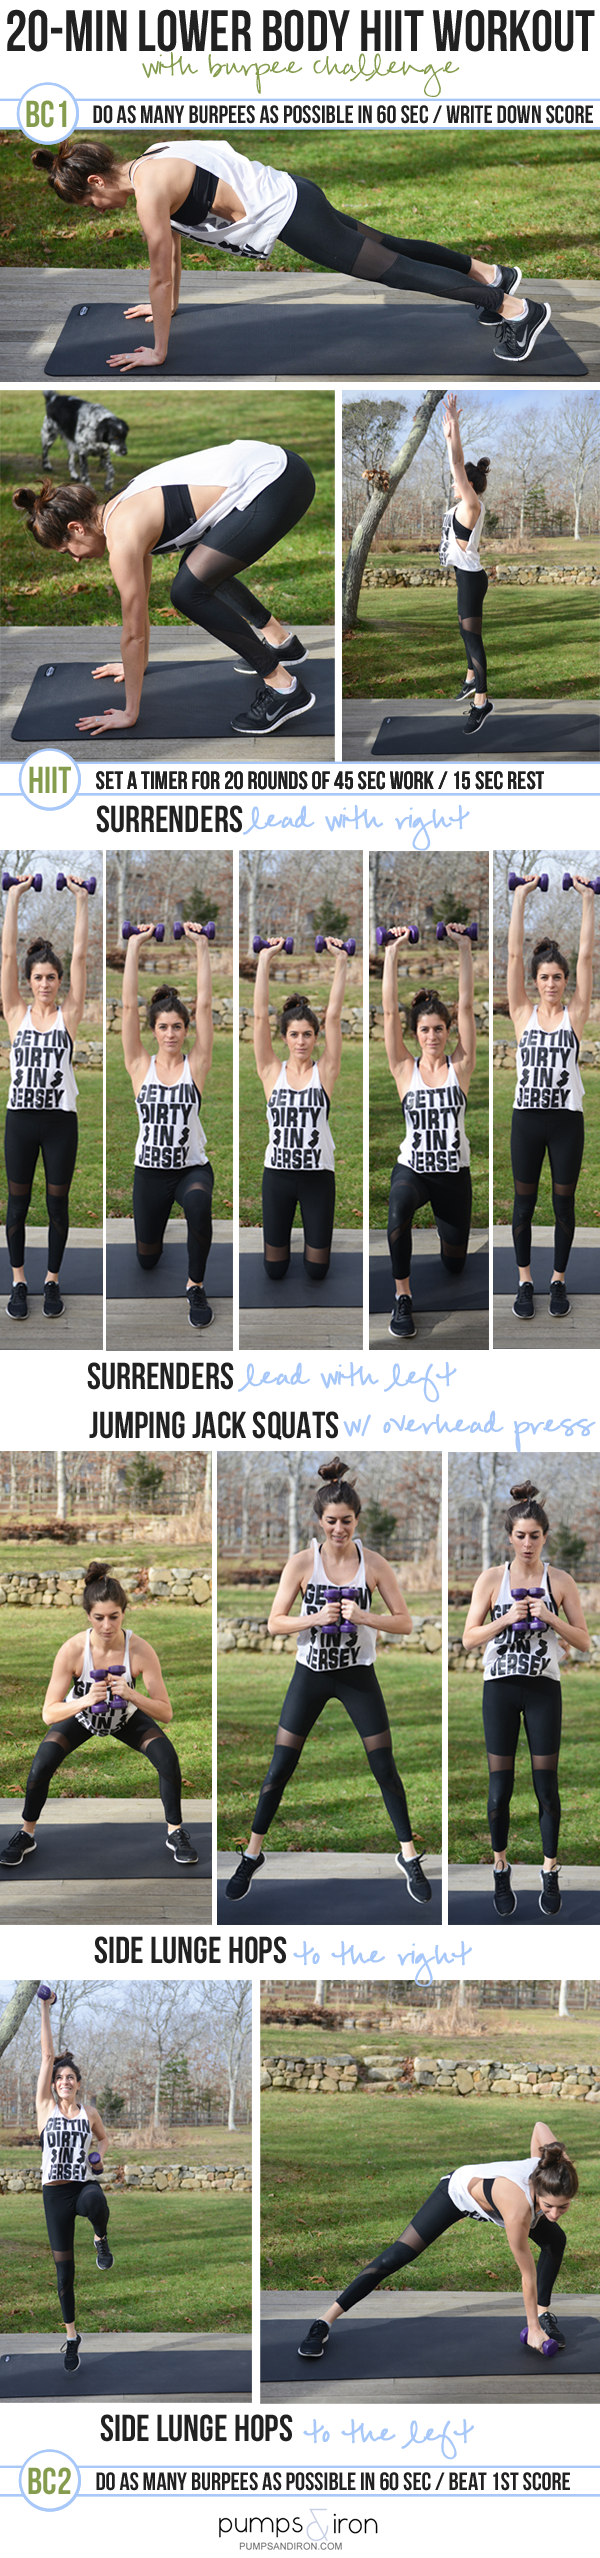 Lower-Body HIIT Workout with a Burpee Challenge